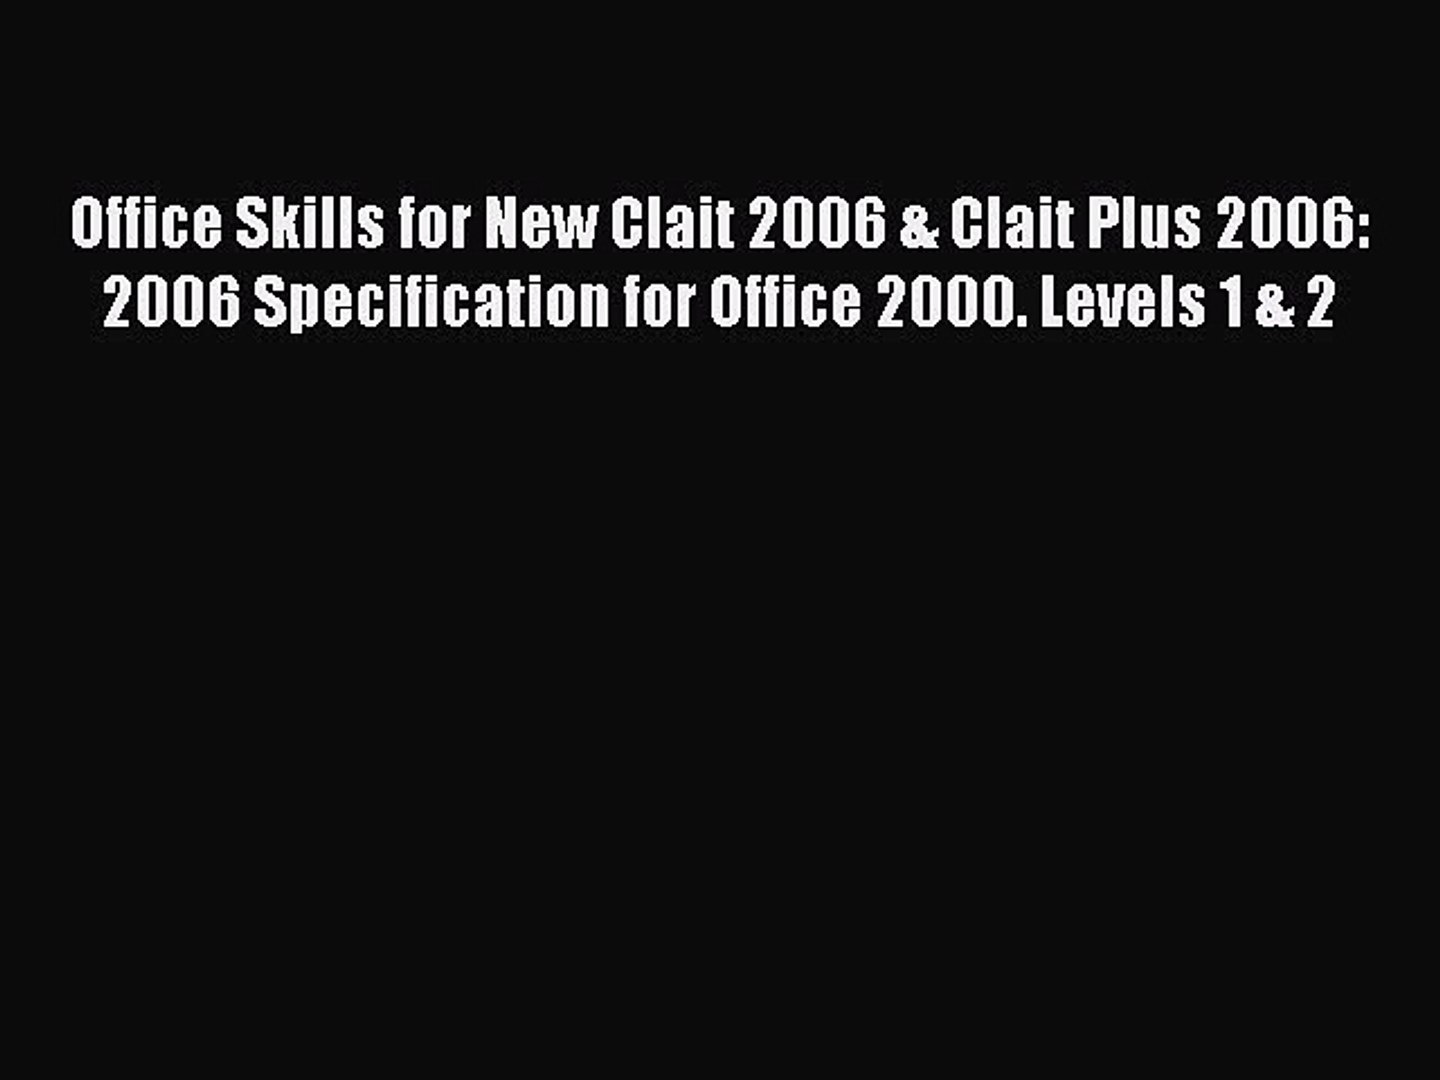 [PDF] Office Skills for New Clait 2006 & Clait Plus 2006: 2006 Specification for Office 2000.